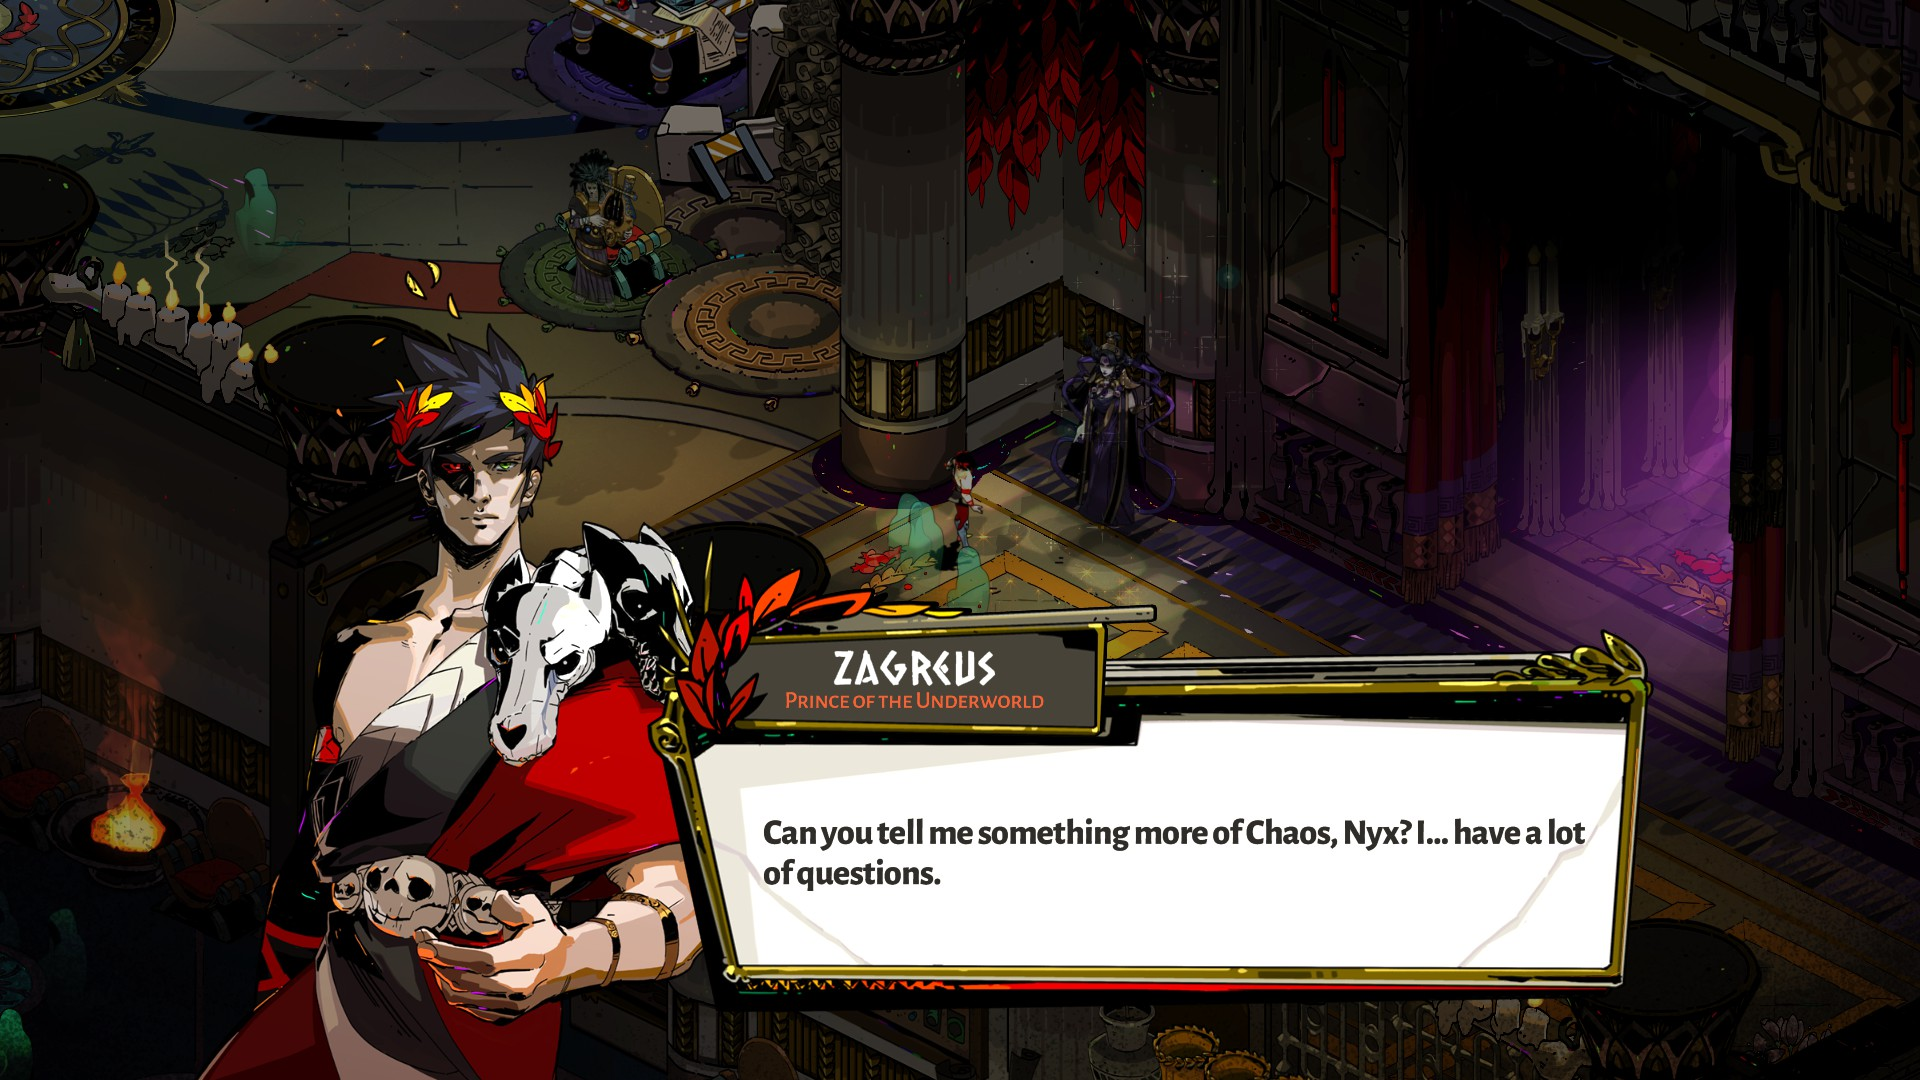 Image of Zagreus from Hades talking to Nyx, asking about Chaos.